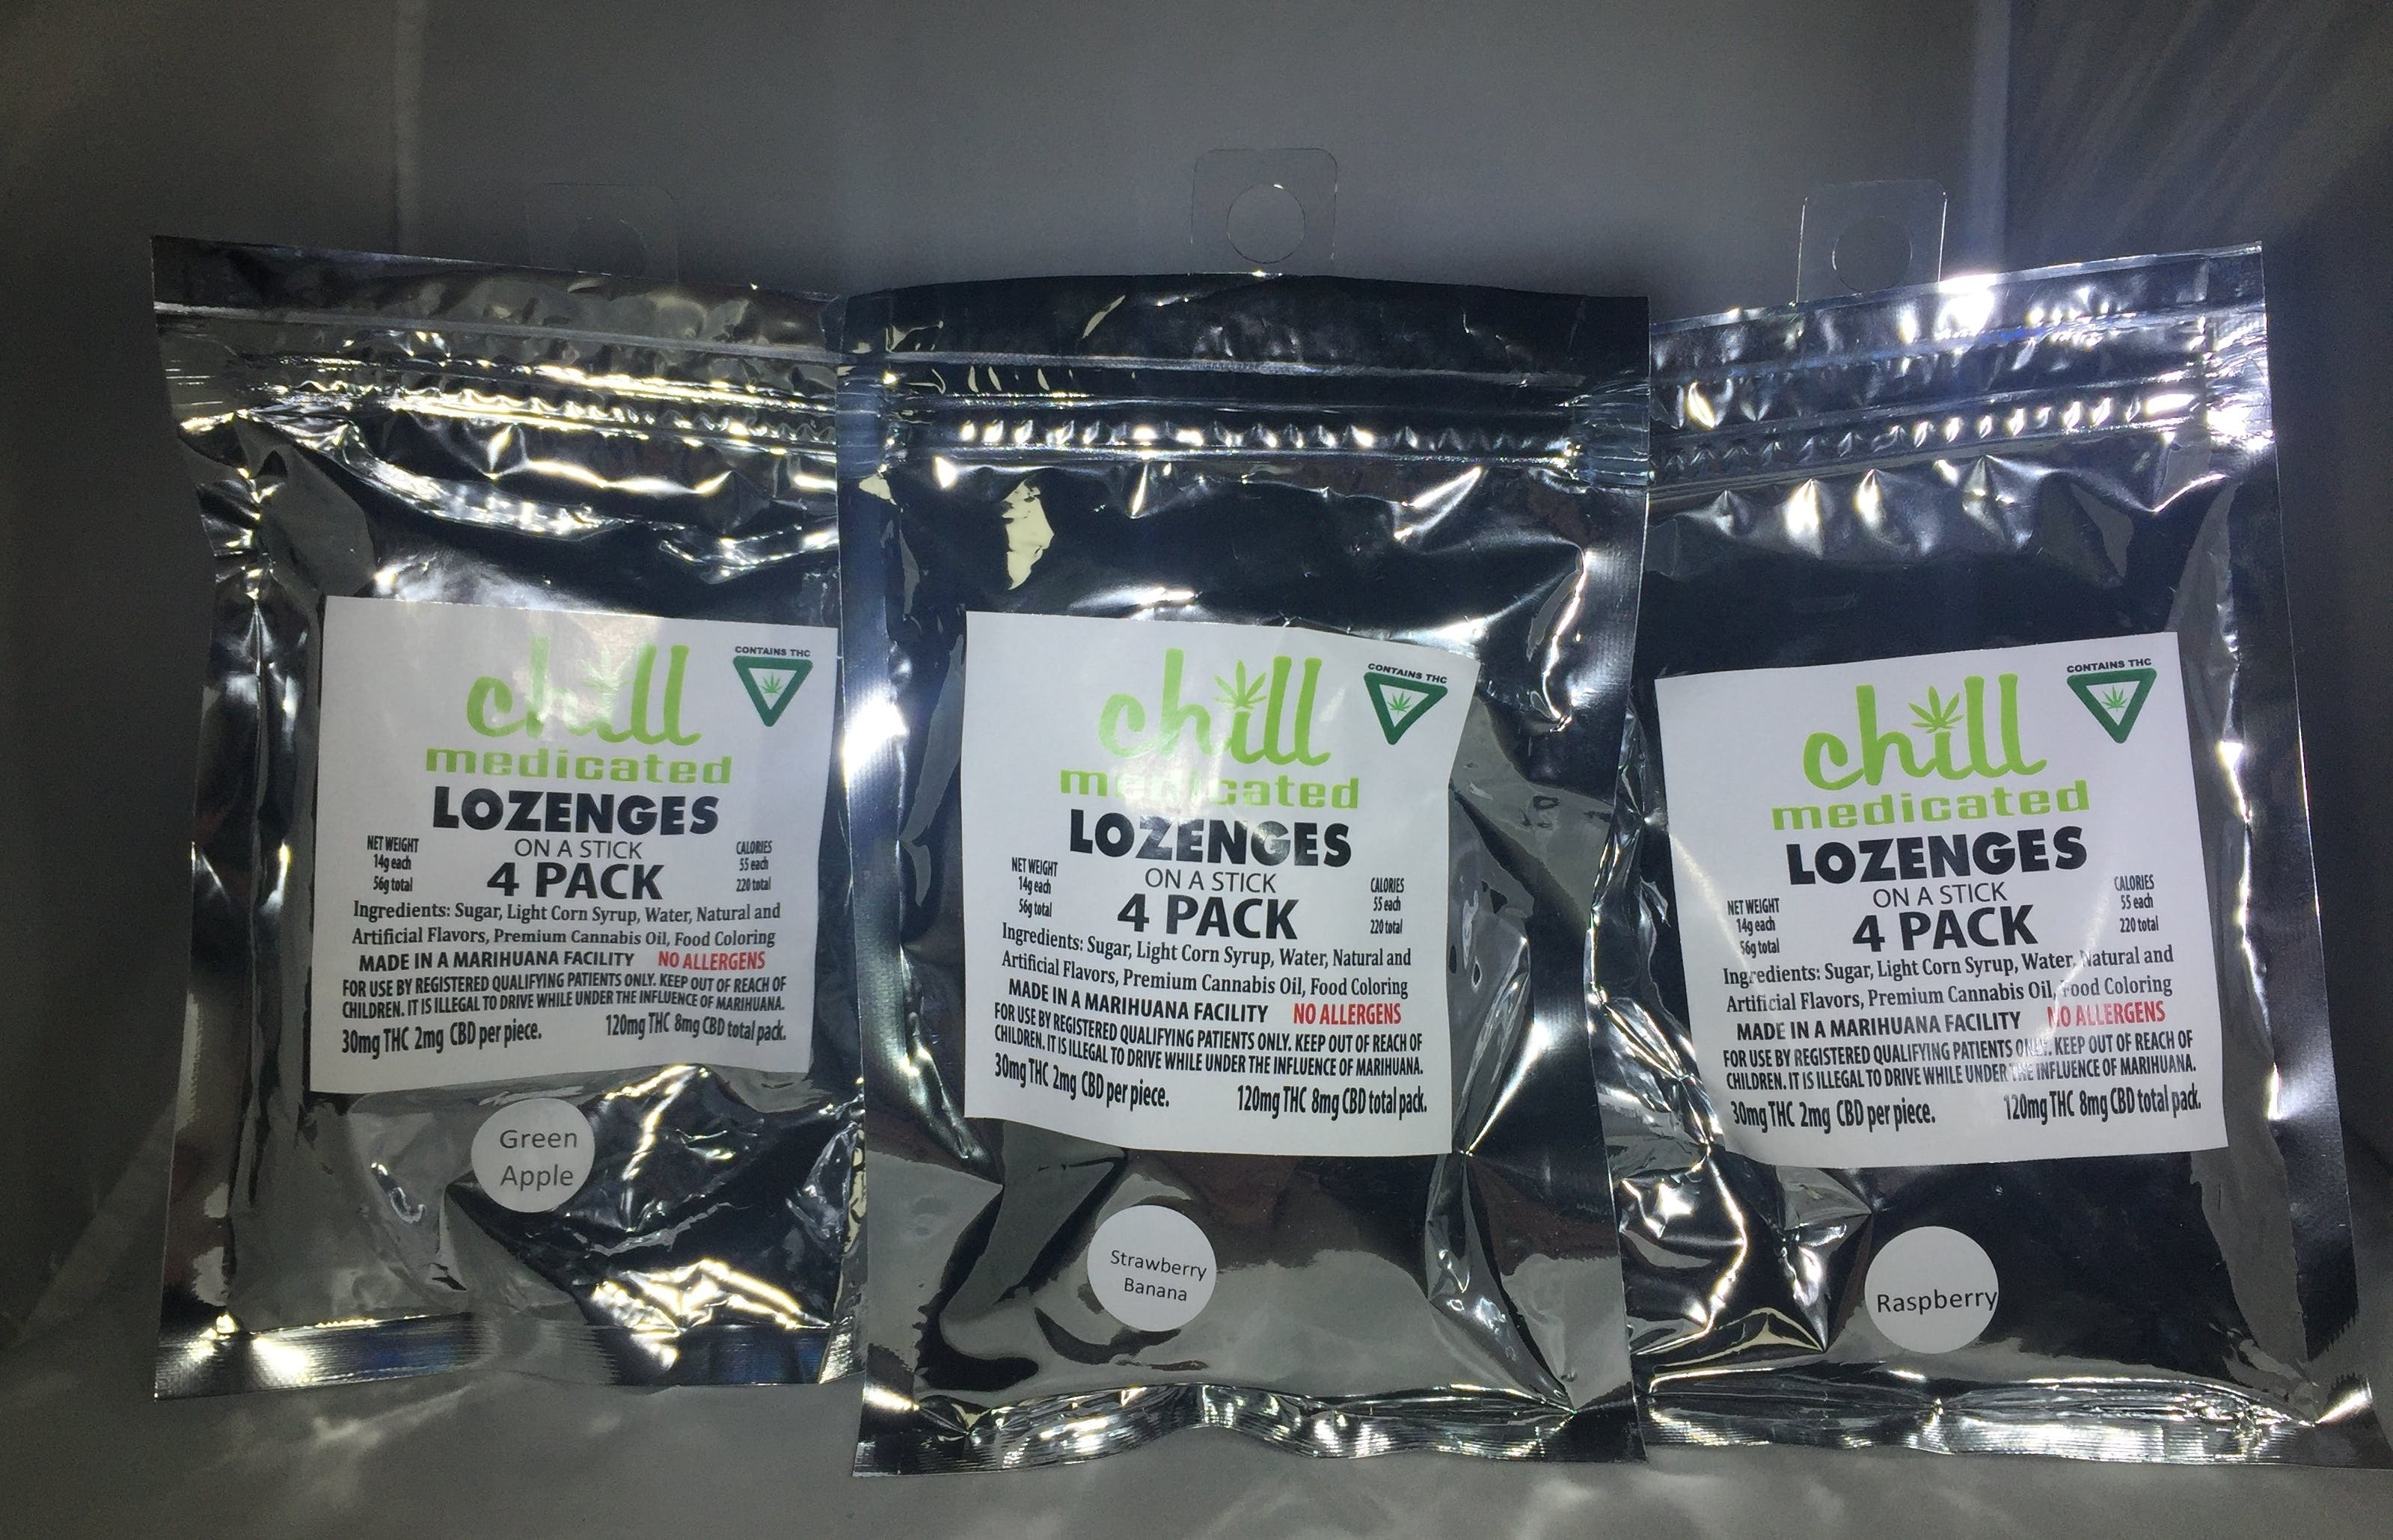 edible-chill-medicated-lozenges-4-pack-30mg-ea-120mg-total